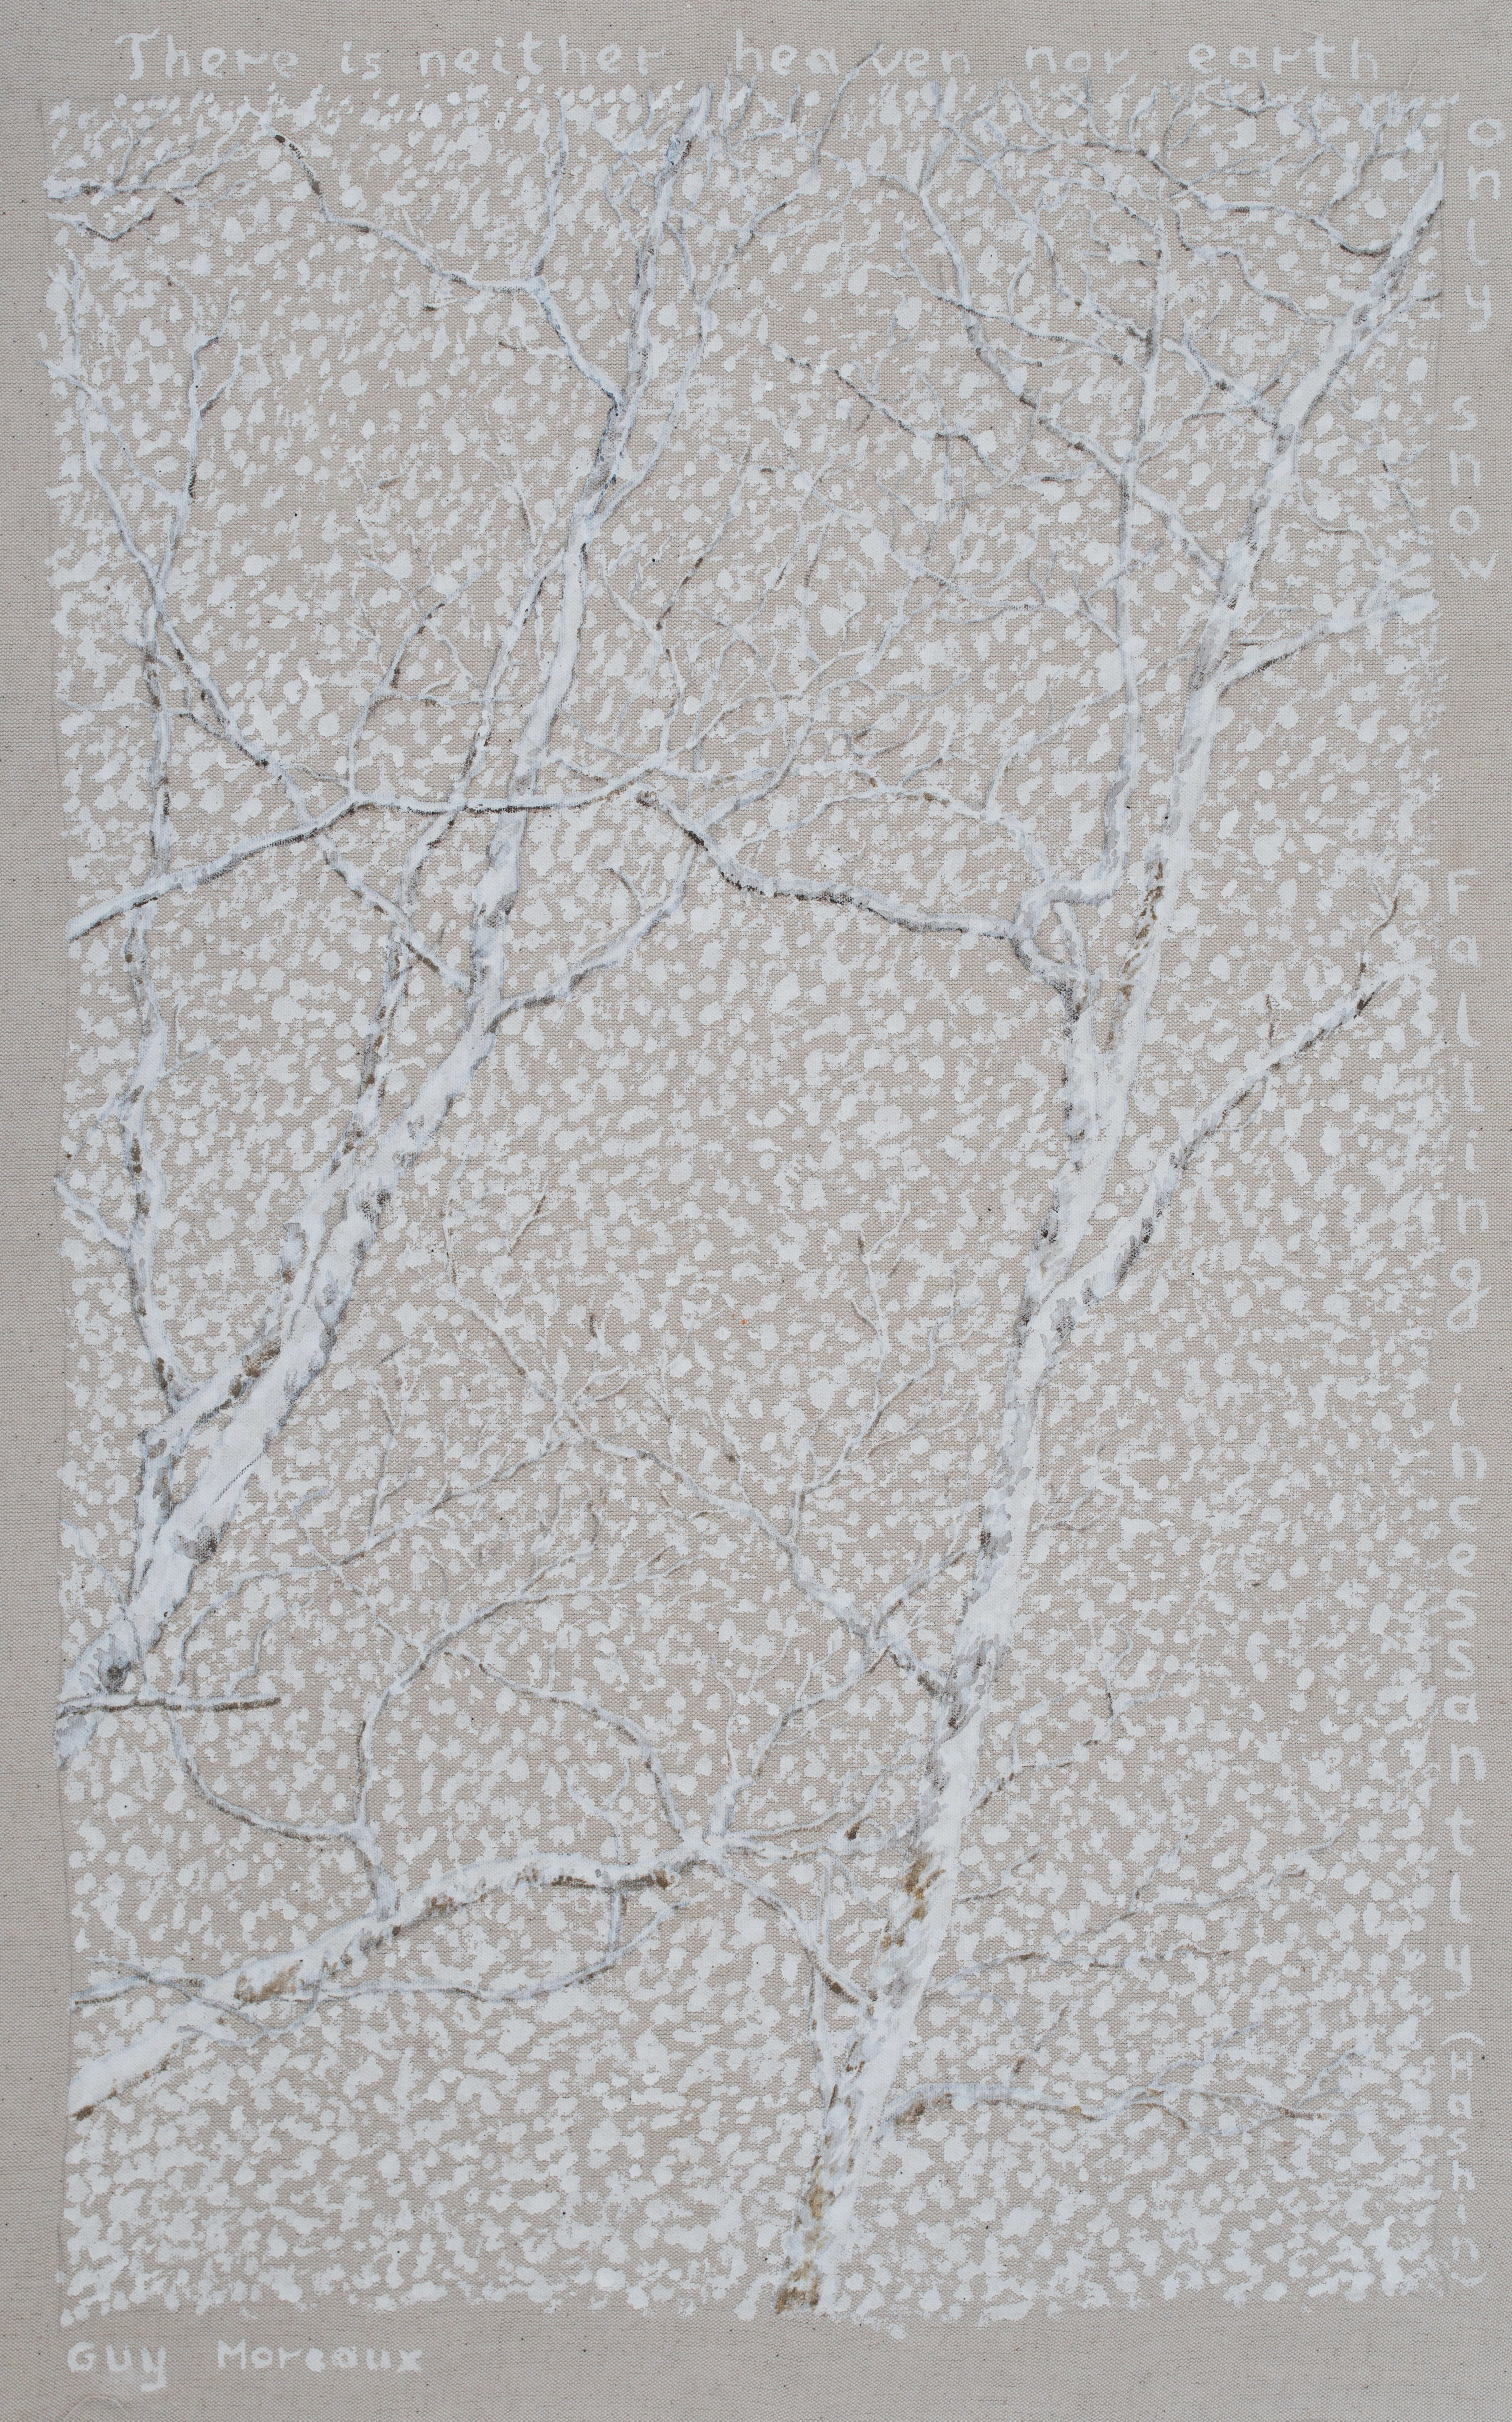 Guy Octaaf Moreaux, 'Haiku Snow', 2005, original Painting Acrylic, 46 x 75  inches. Artwork description: 1758 There is neither heaven nor earth/ Only snow/ Falling incessantly/Haiku from Hashin.Acrylic on canvas....